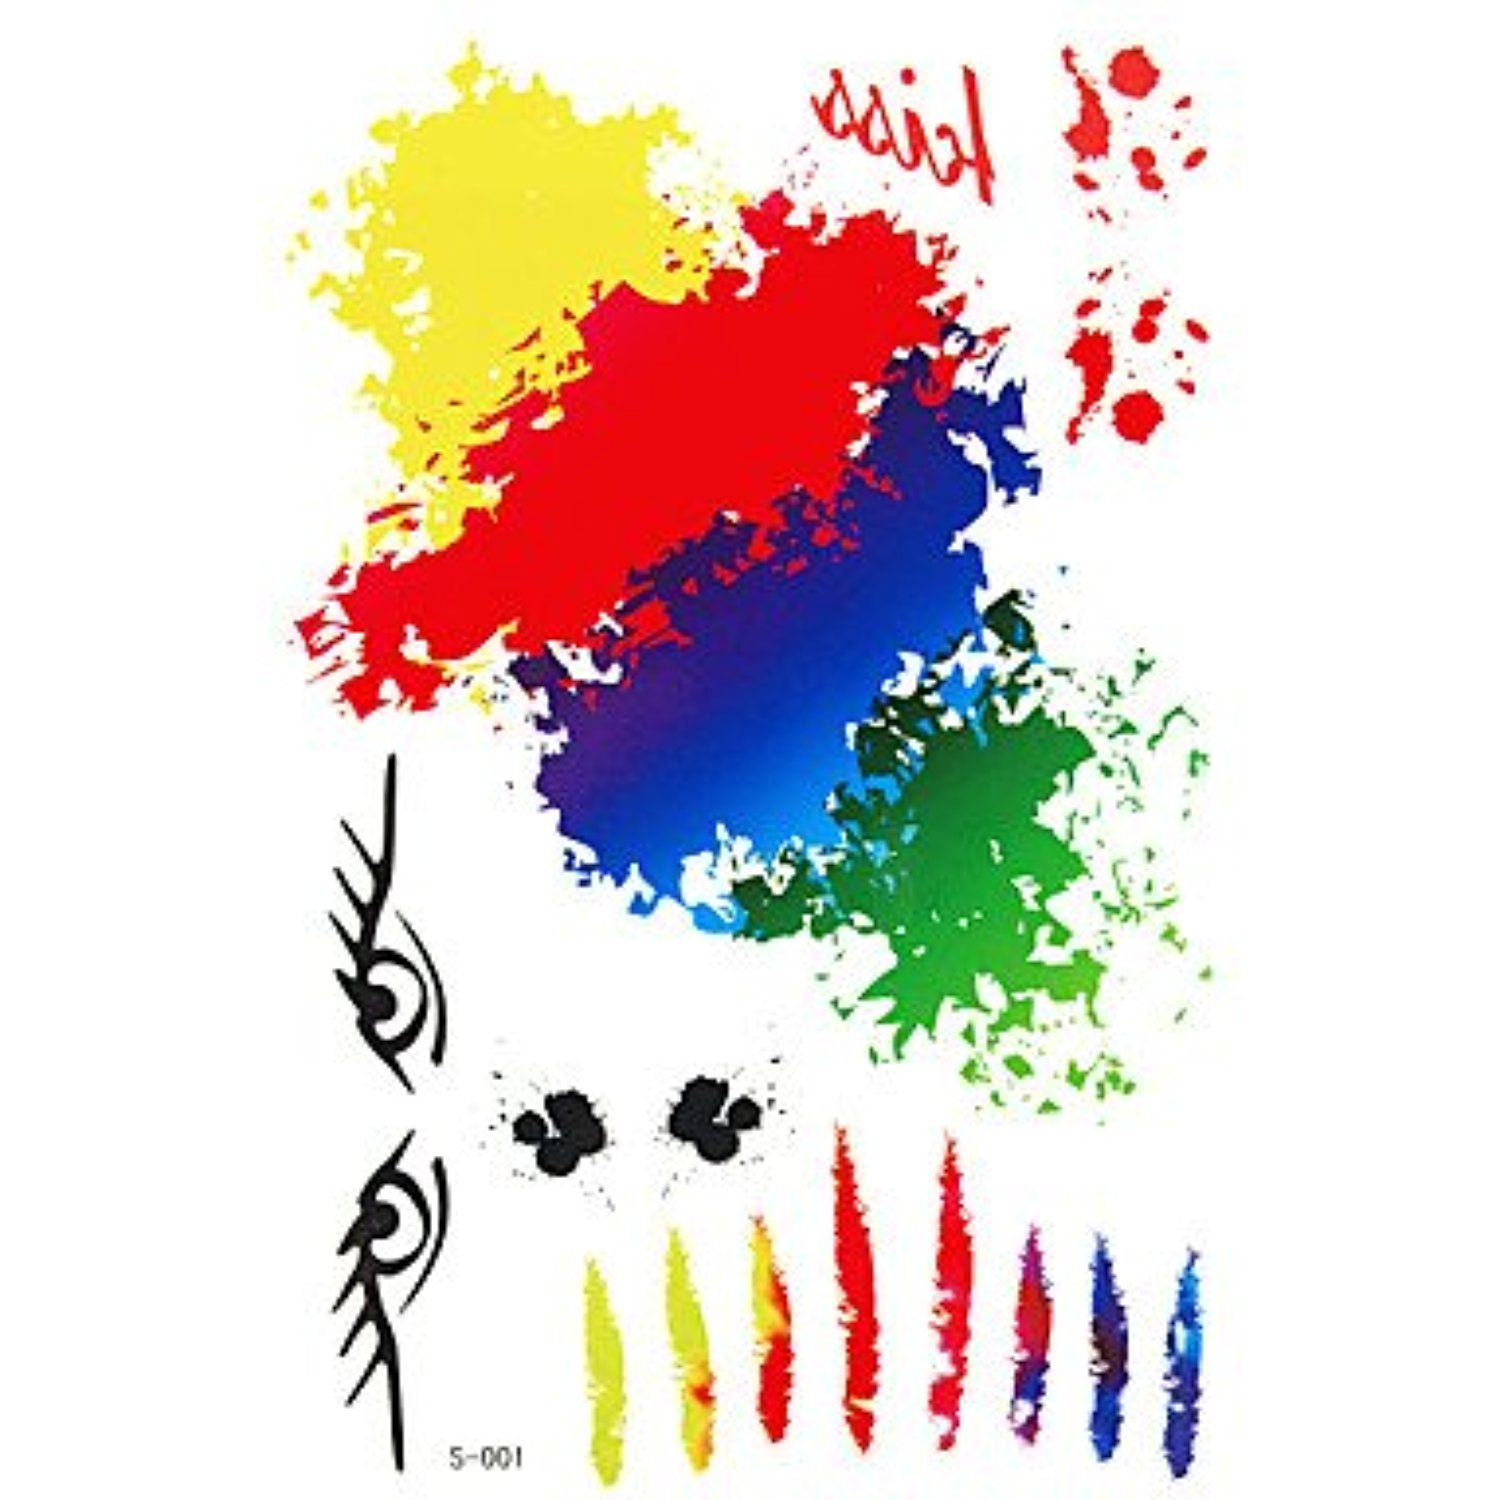 HJLWST 1 Pc Colorful and Creative Pattern Temporary Tattoo Stick Keeping 7 Days ** Visit the image link more details. (This is an affiliate link) #Makeup